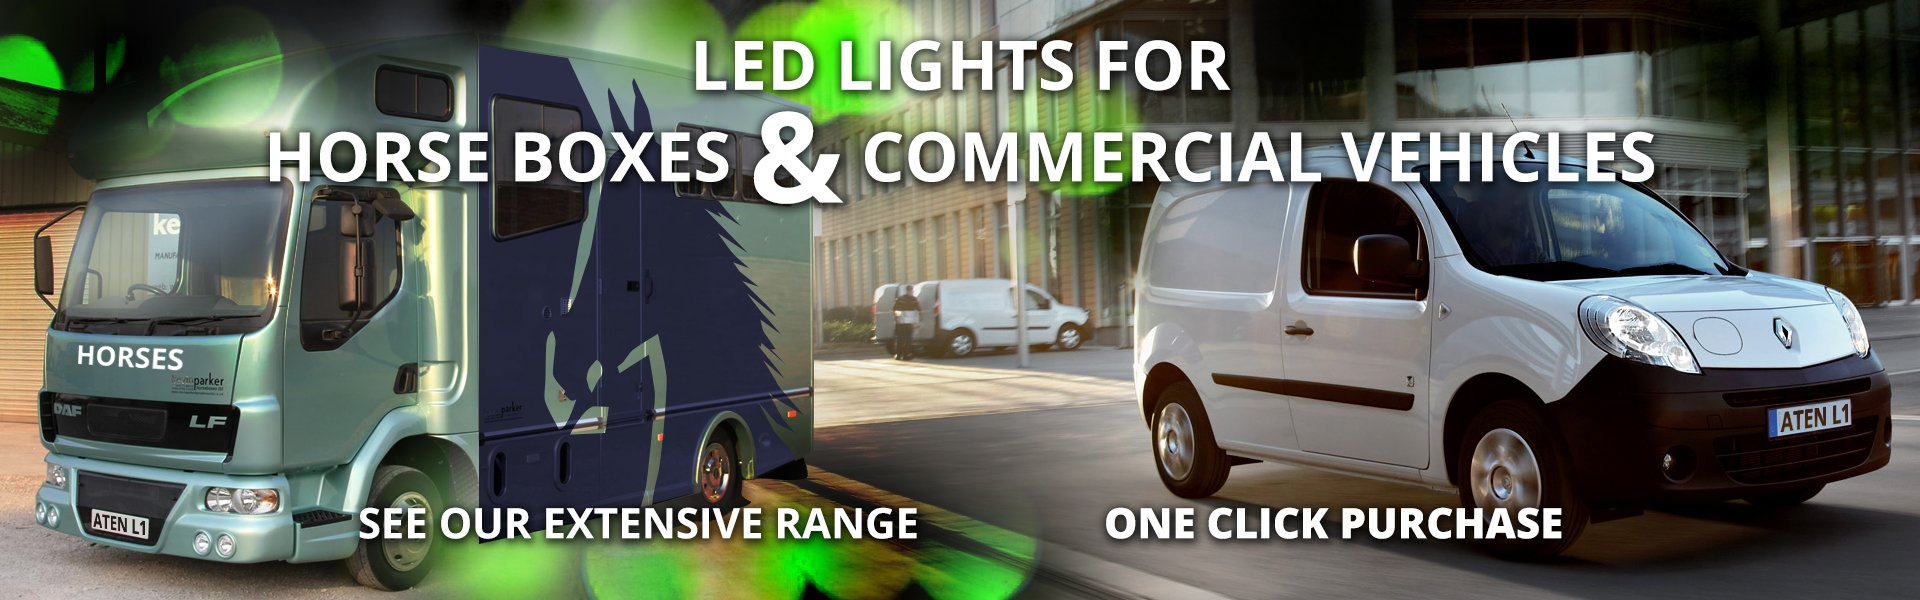 Horsebox and Commercial Vehicle LED Lighting